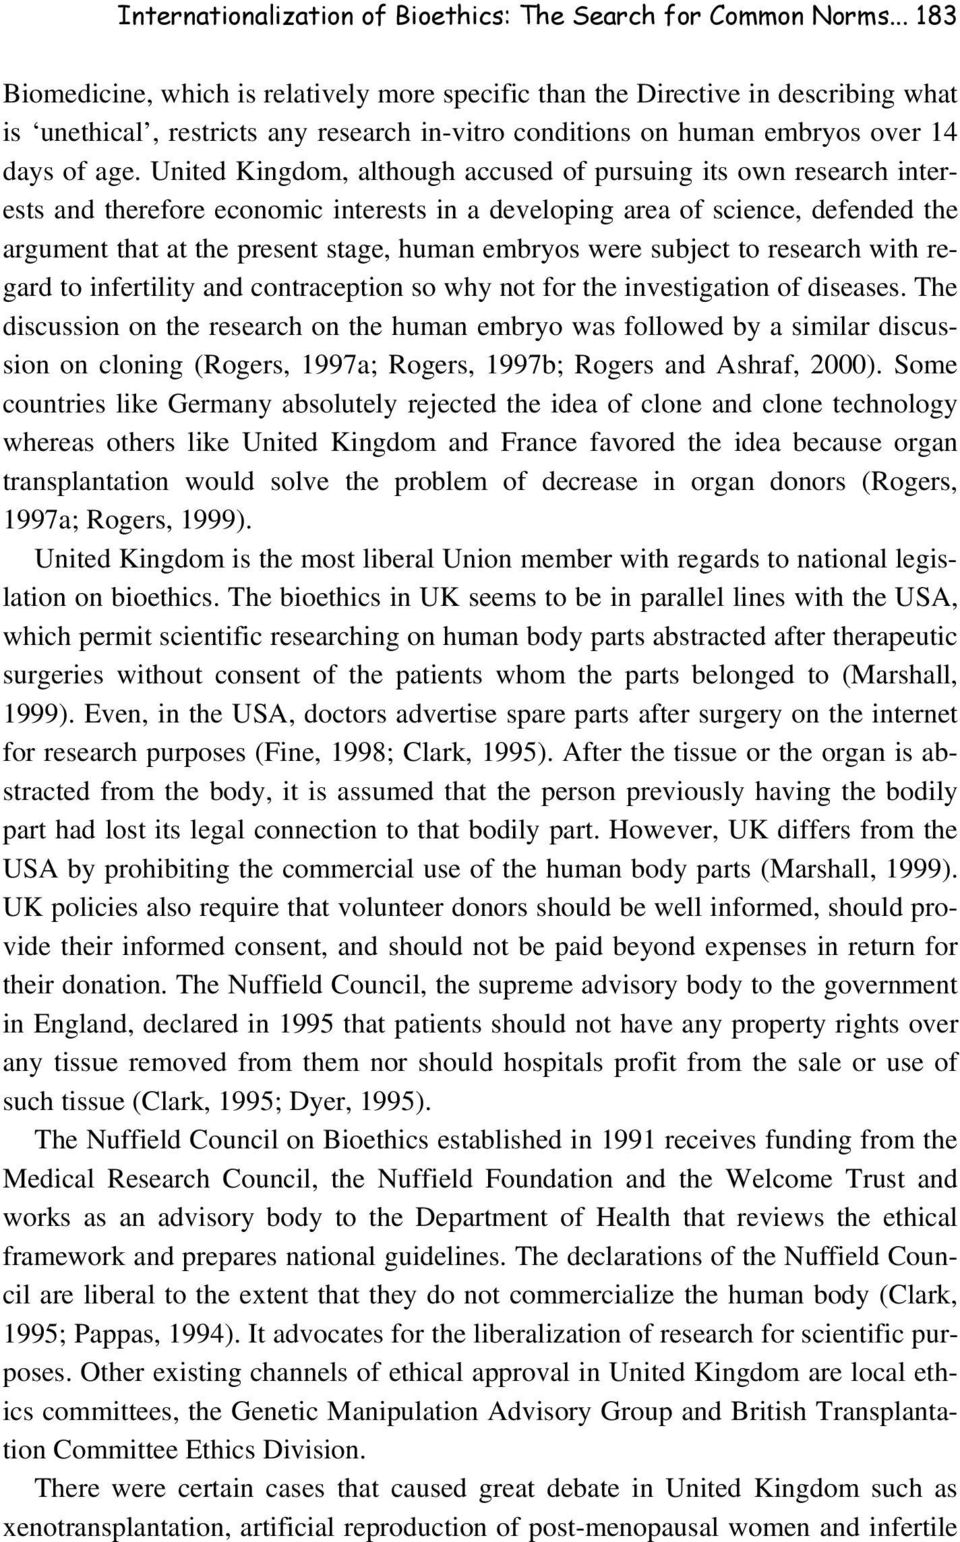 United Kingdom, although accused of pursuing its own research interests and therefore economic interests in a developing area of science, defended the argument that at the present stage, human